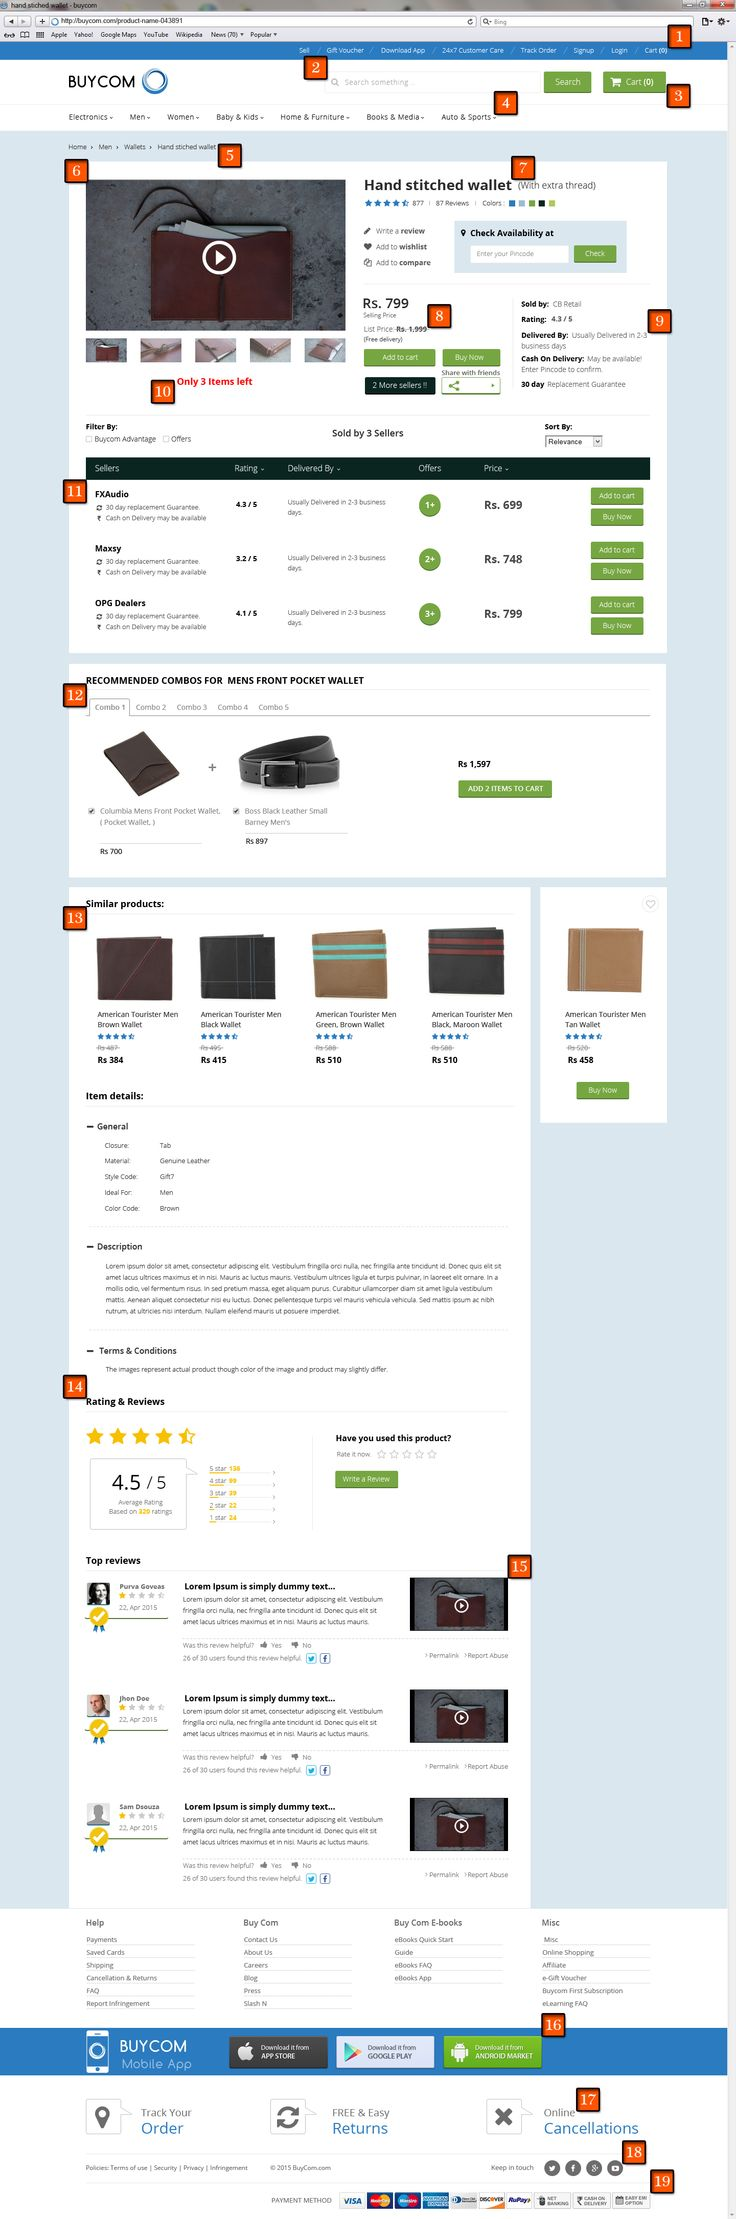 eCommerce landing page is an important key to conversion. So, Nine Hertz has designed an ideal #SEO Friendly #eCommerce Product Landing Page that is #FREE for download.